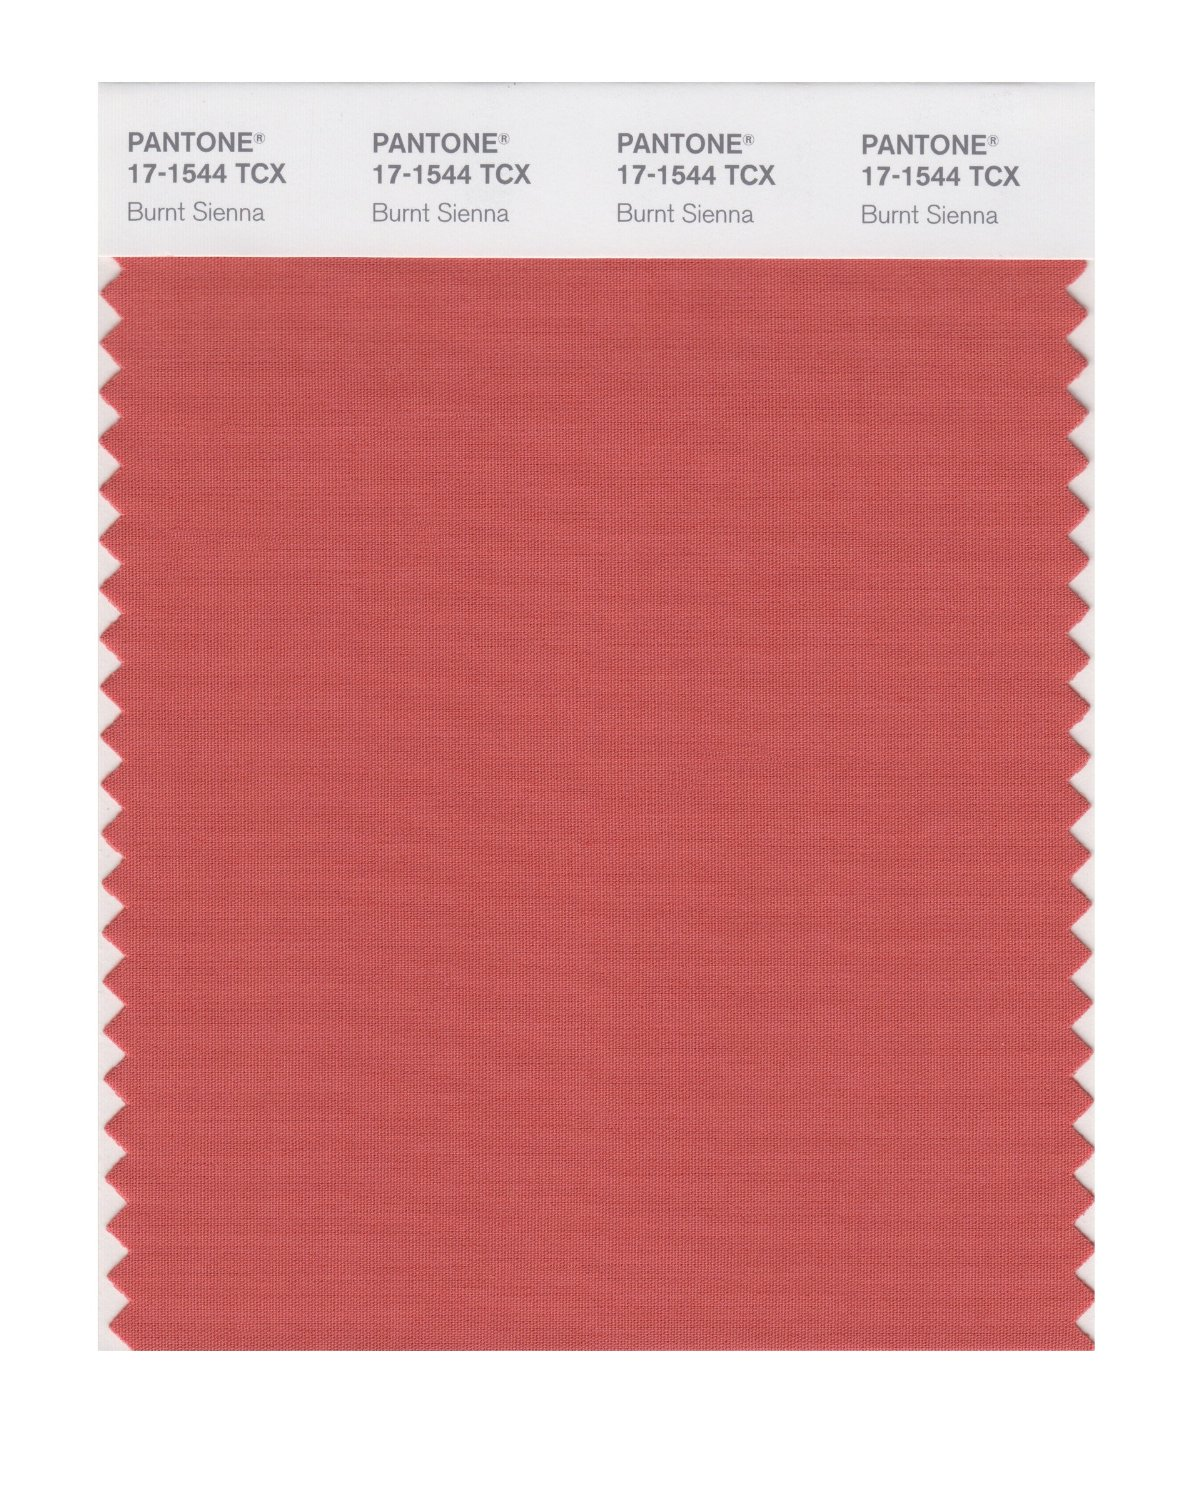 Pantone Smart Swatch 17-1544 Burnt Sienna